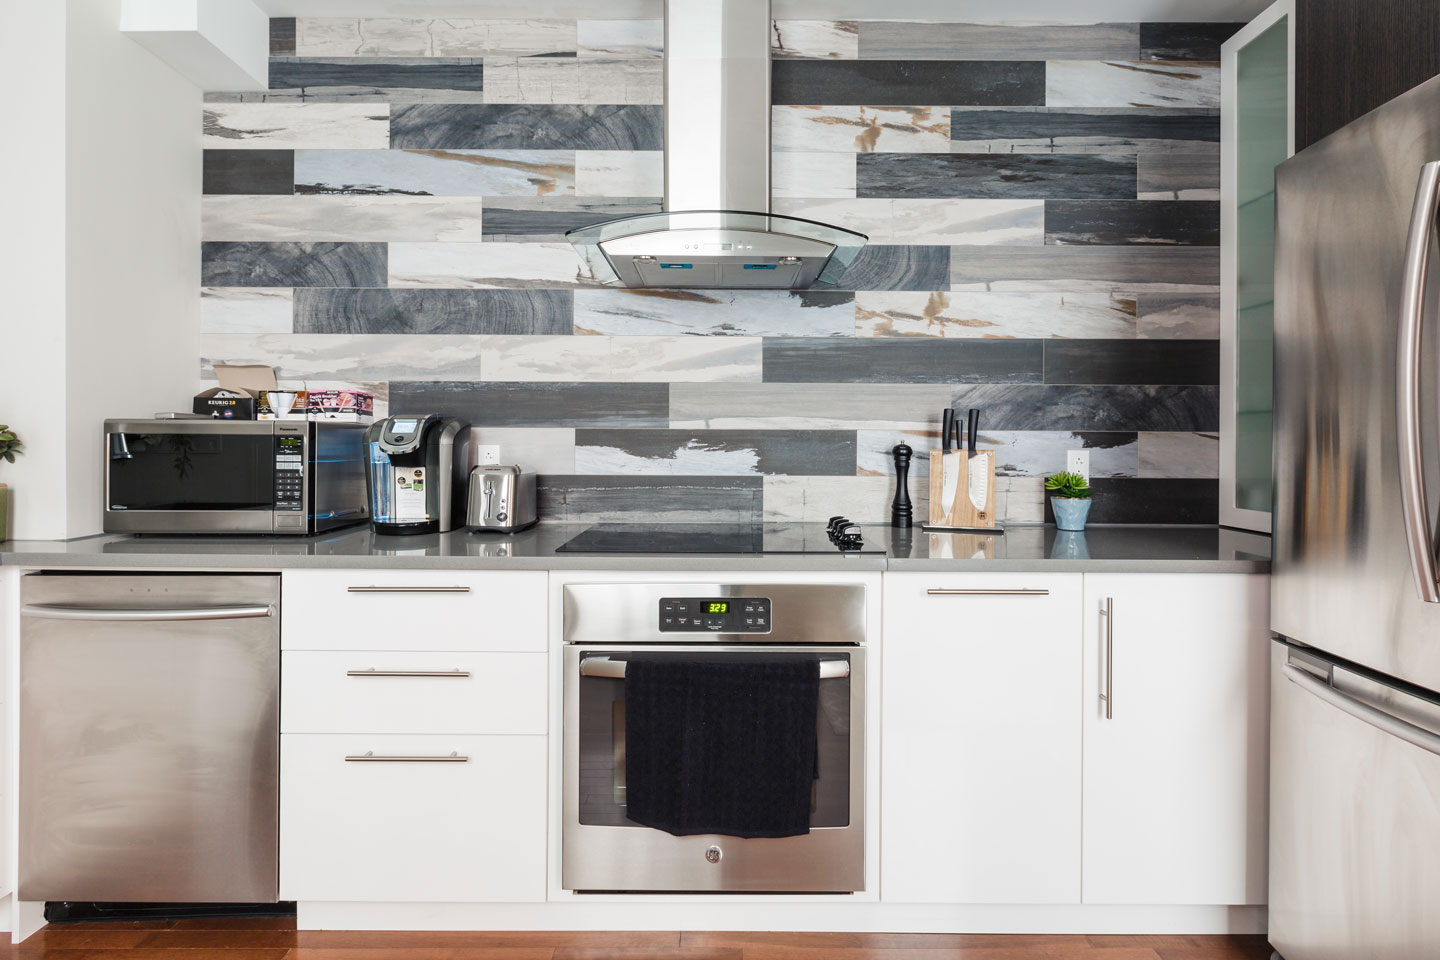 Fabfour: kitchen with stainless steel appliances